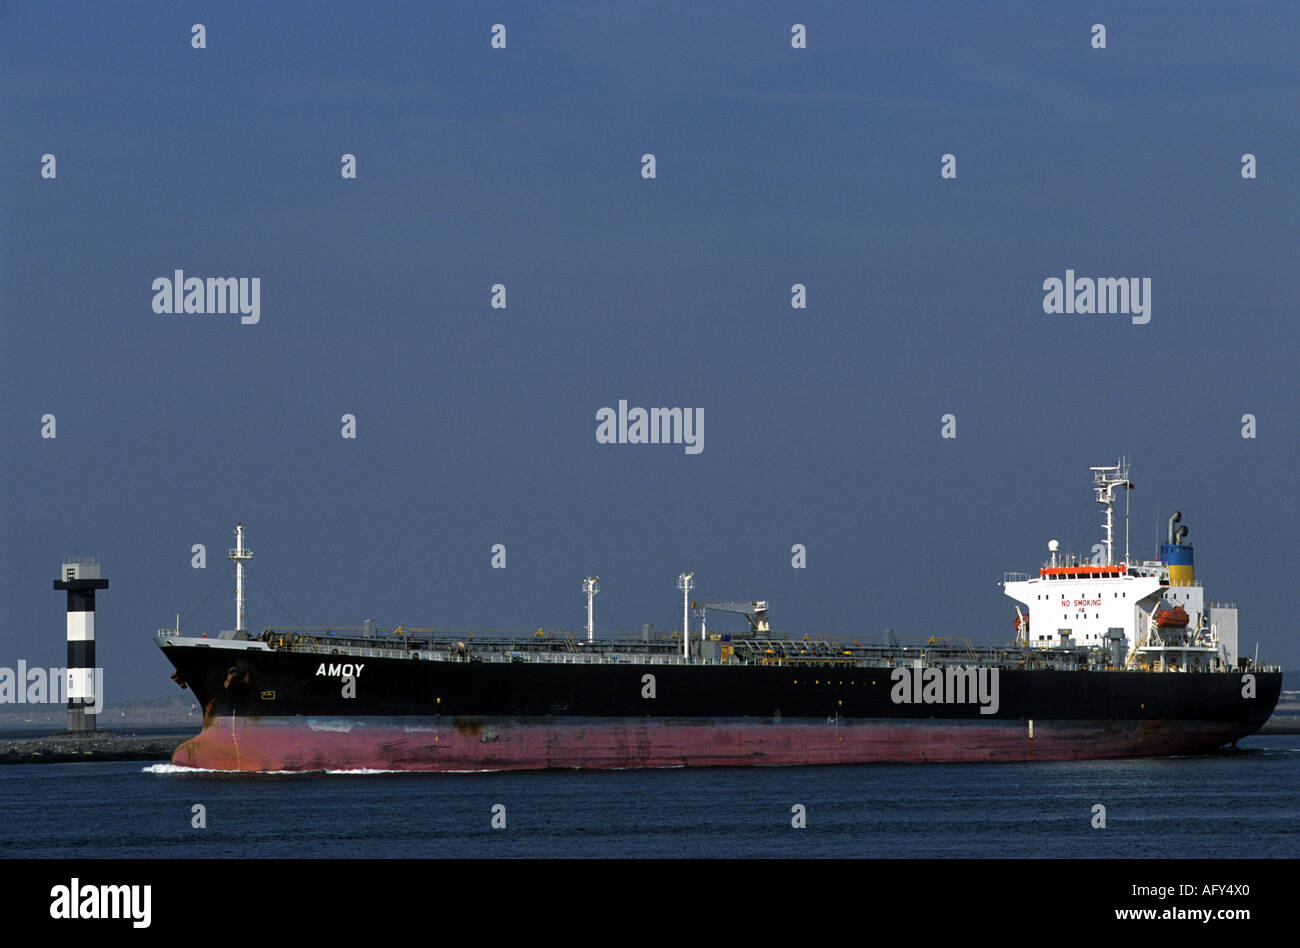 'Amoy' oil tanker leaving the port of Rotterdam, Holland. - Stock Image